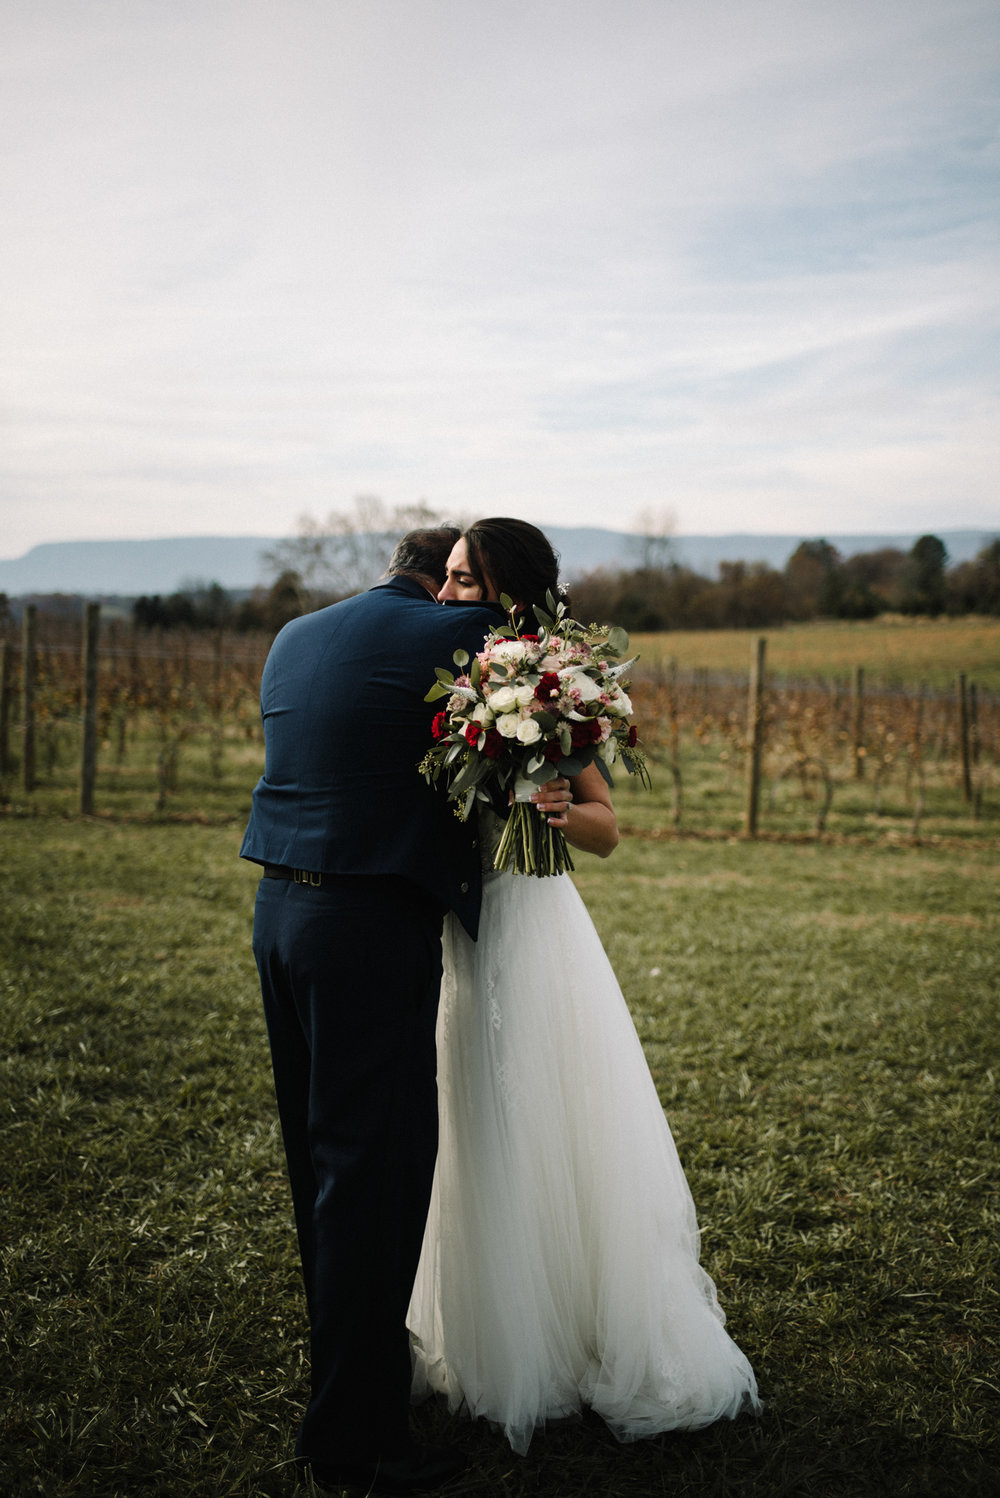 Alyssa and Jesse Winter Vineyard Wedding Luray Virginia Shenandoah Valley Faithbrooke_61.JPG